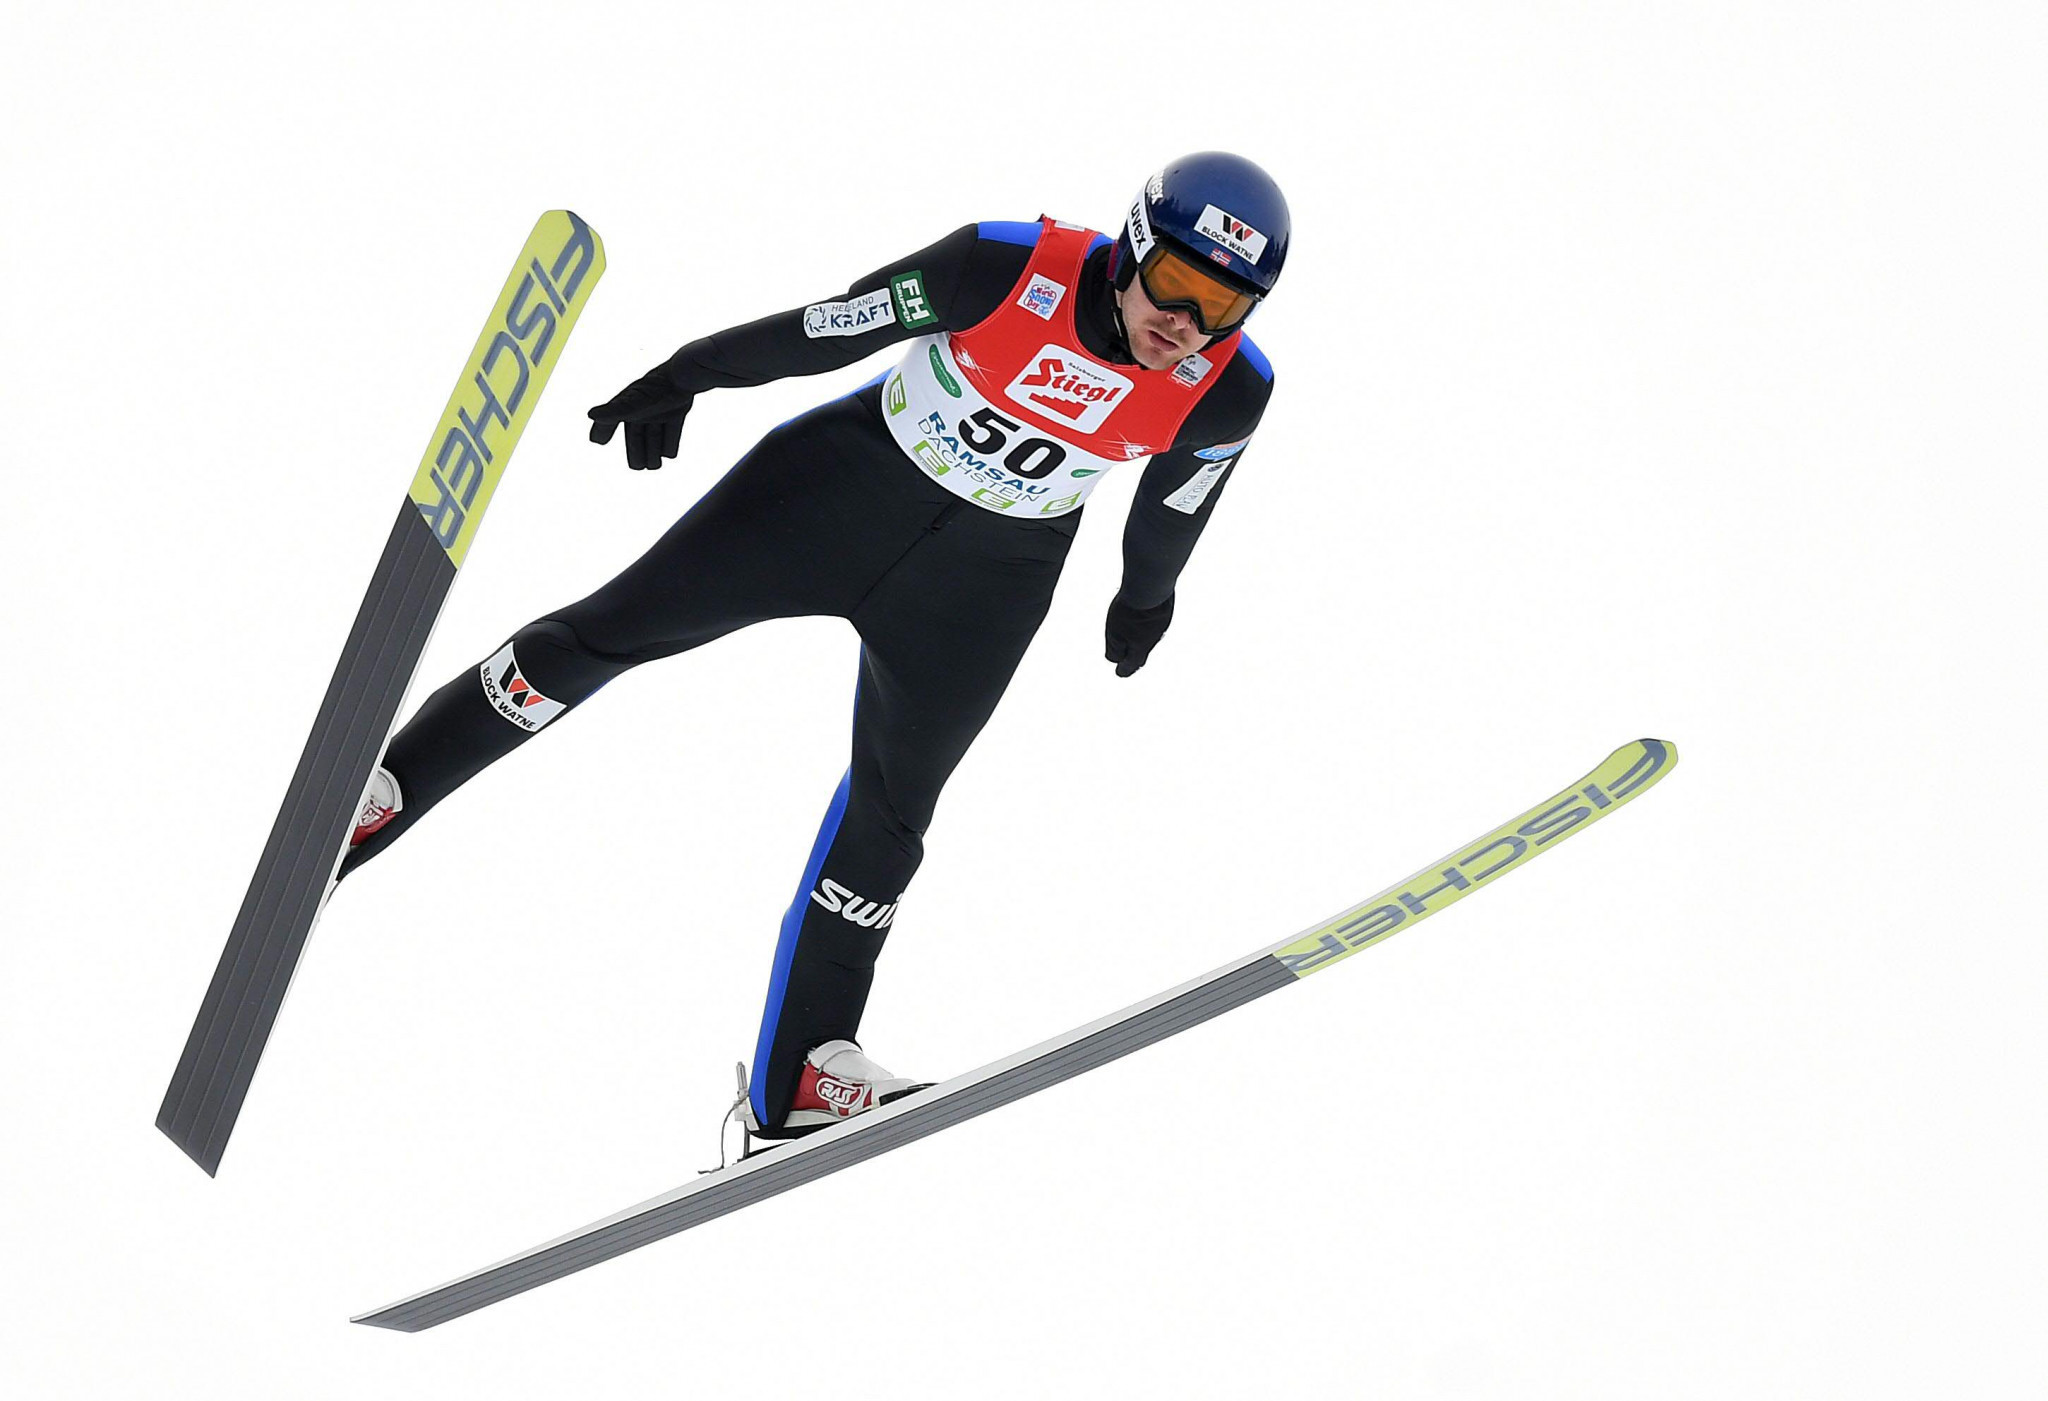 Graabak seeks further success at Nordic Combined World Cup in Otepää